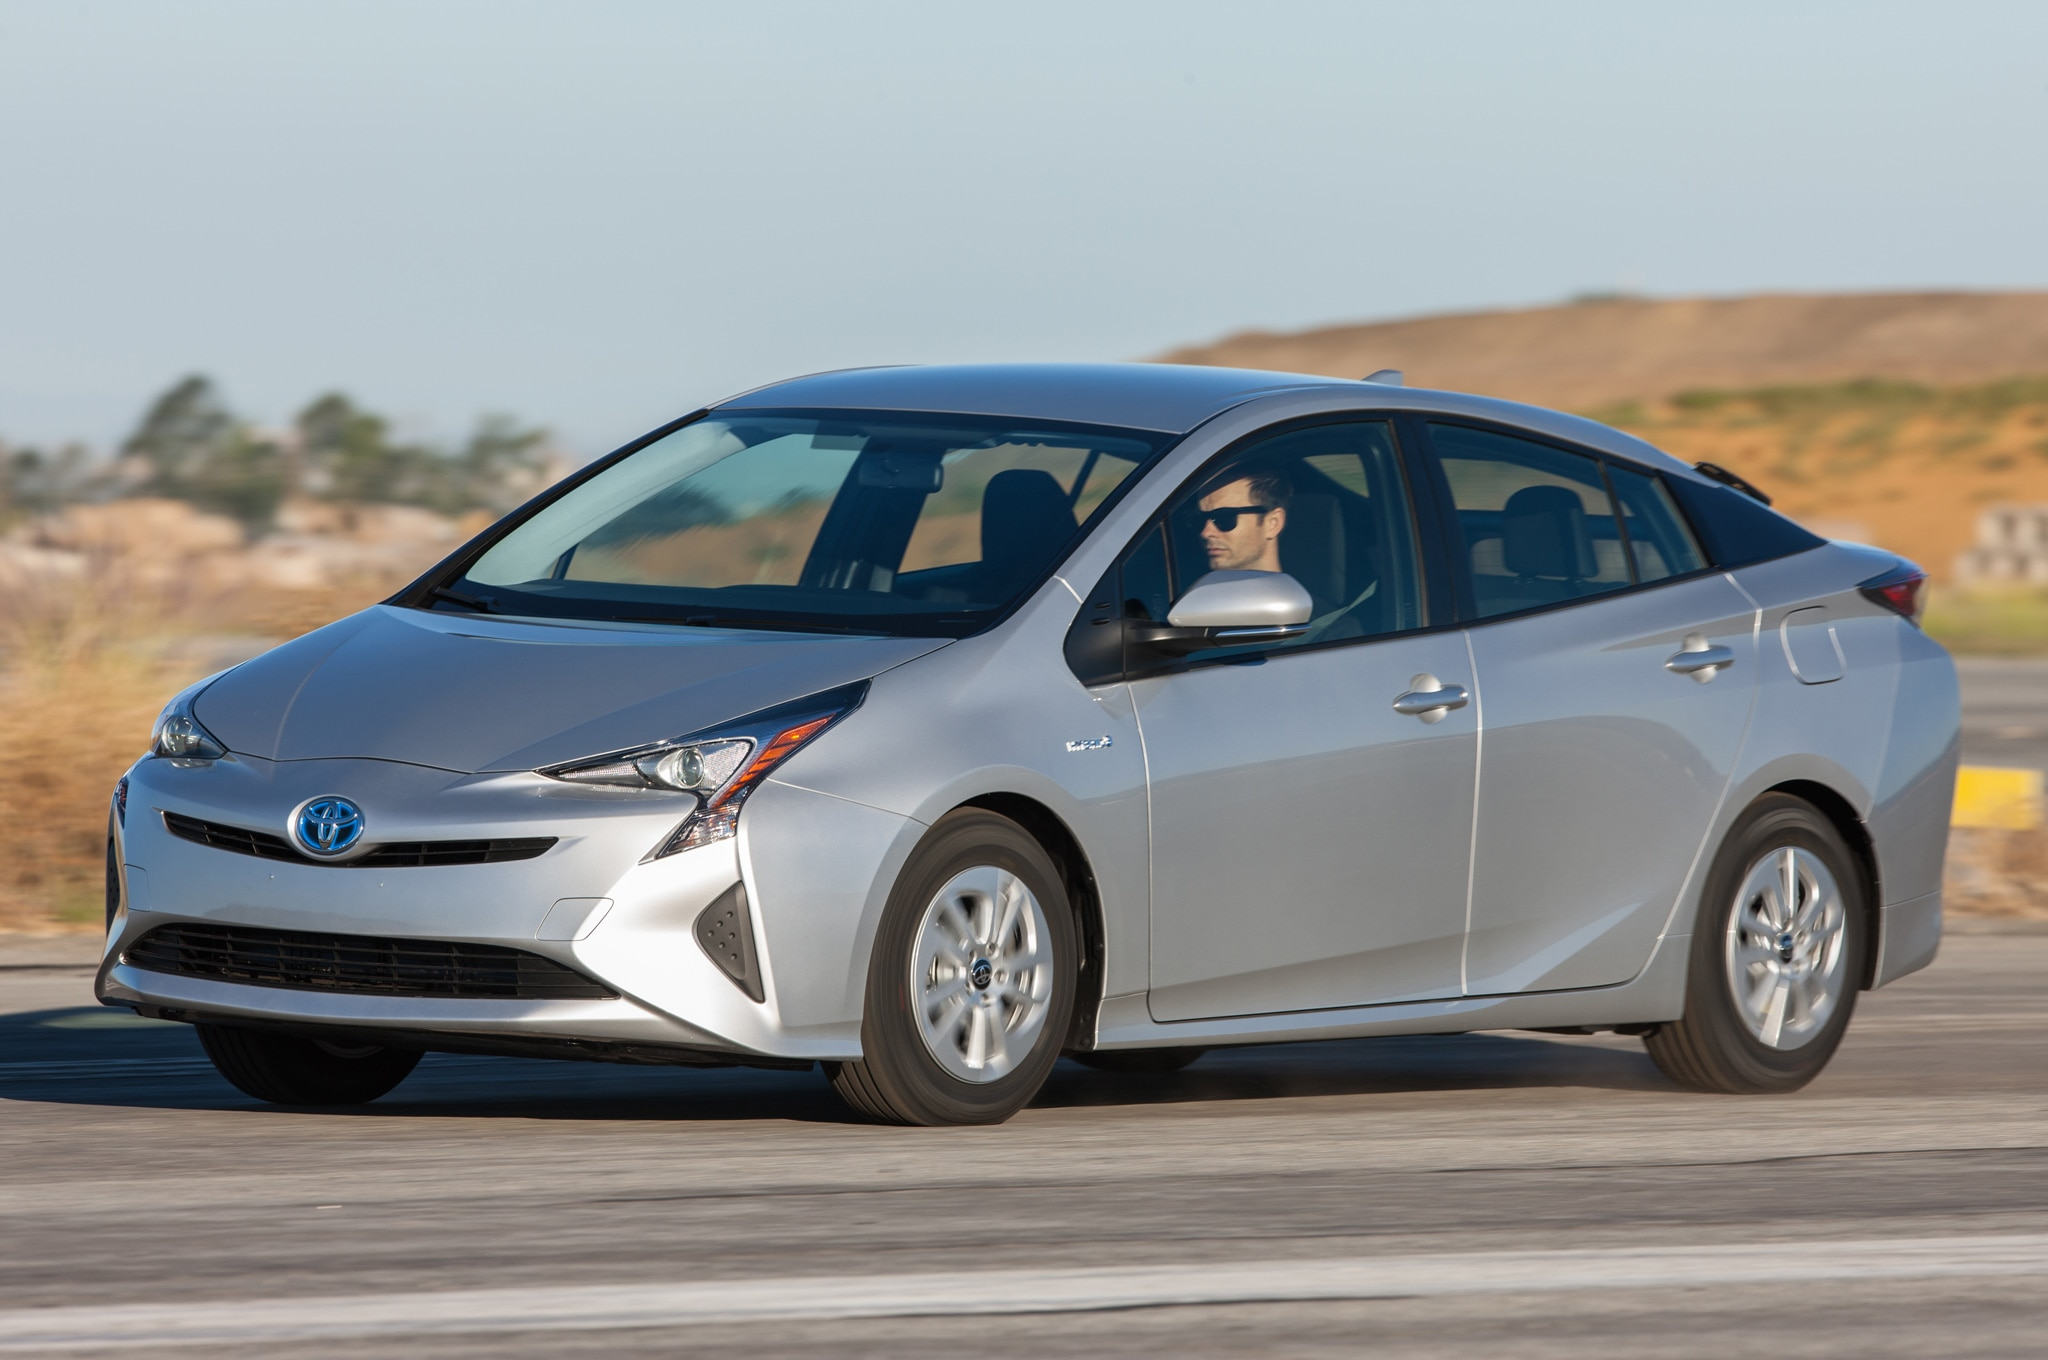 driving the 2016 toyota prius on fuji speedway in japan. Black Bedroom Furniture Sets. Home Design Ideas